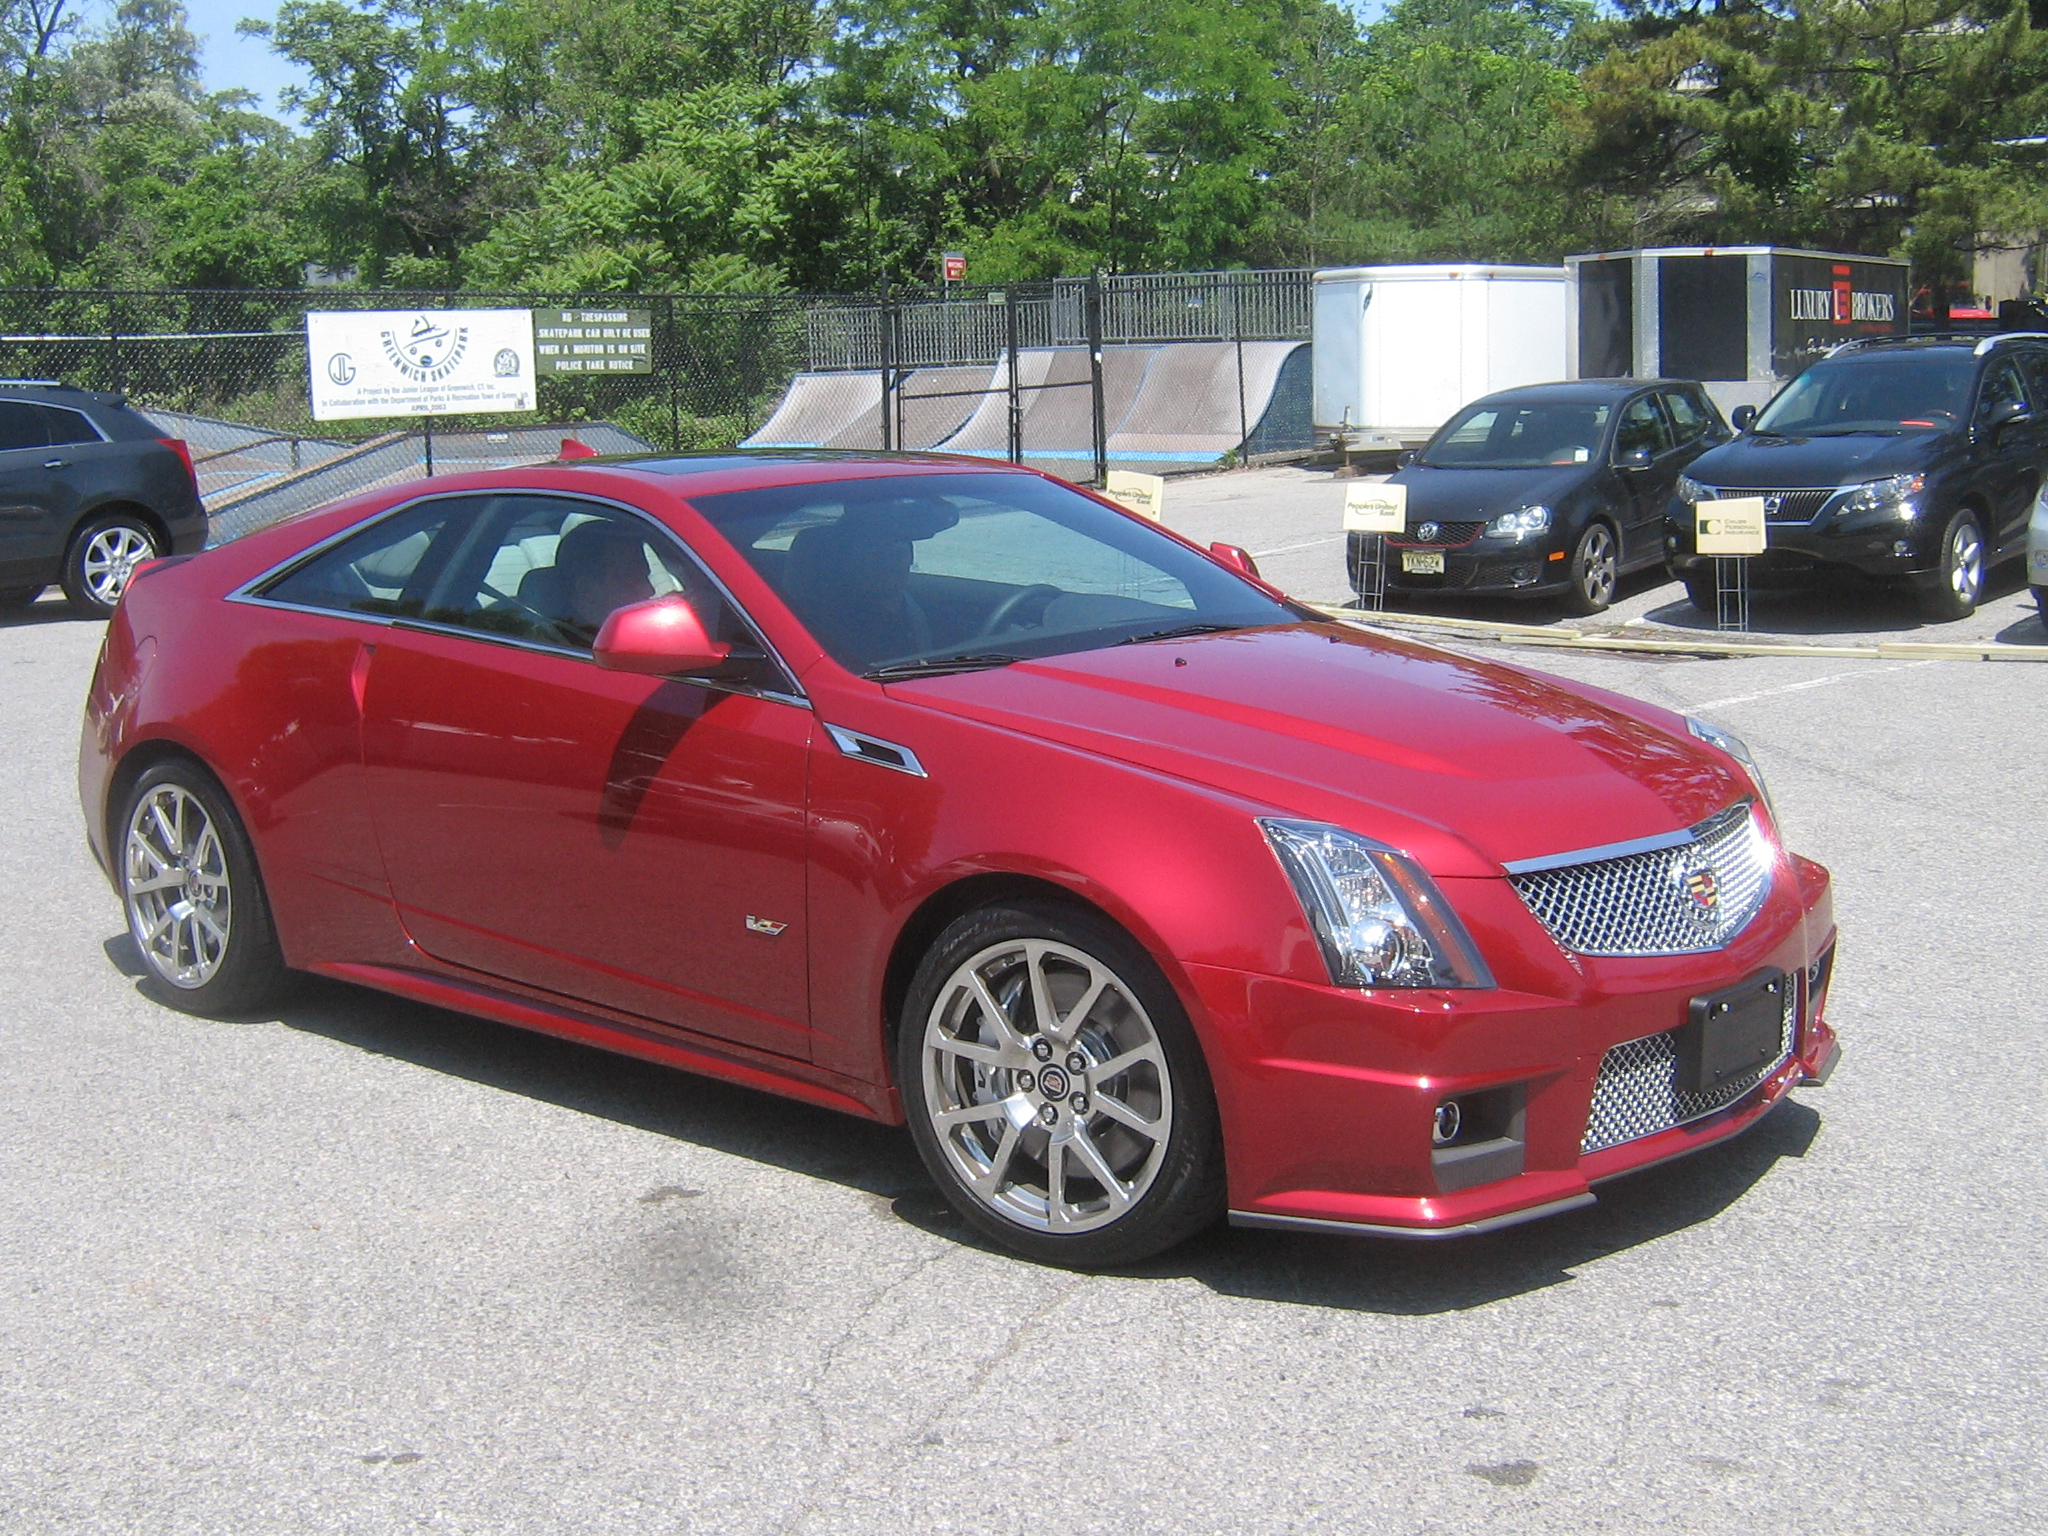 test driven 2011 cadillac cts v coupe mind over motor. Black Bedroom Furniture Sets. Home Design Ideas